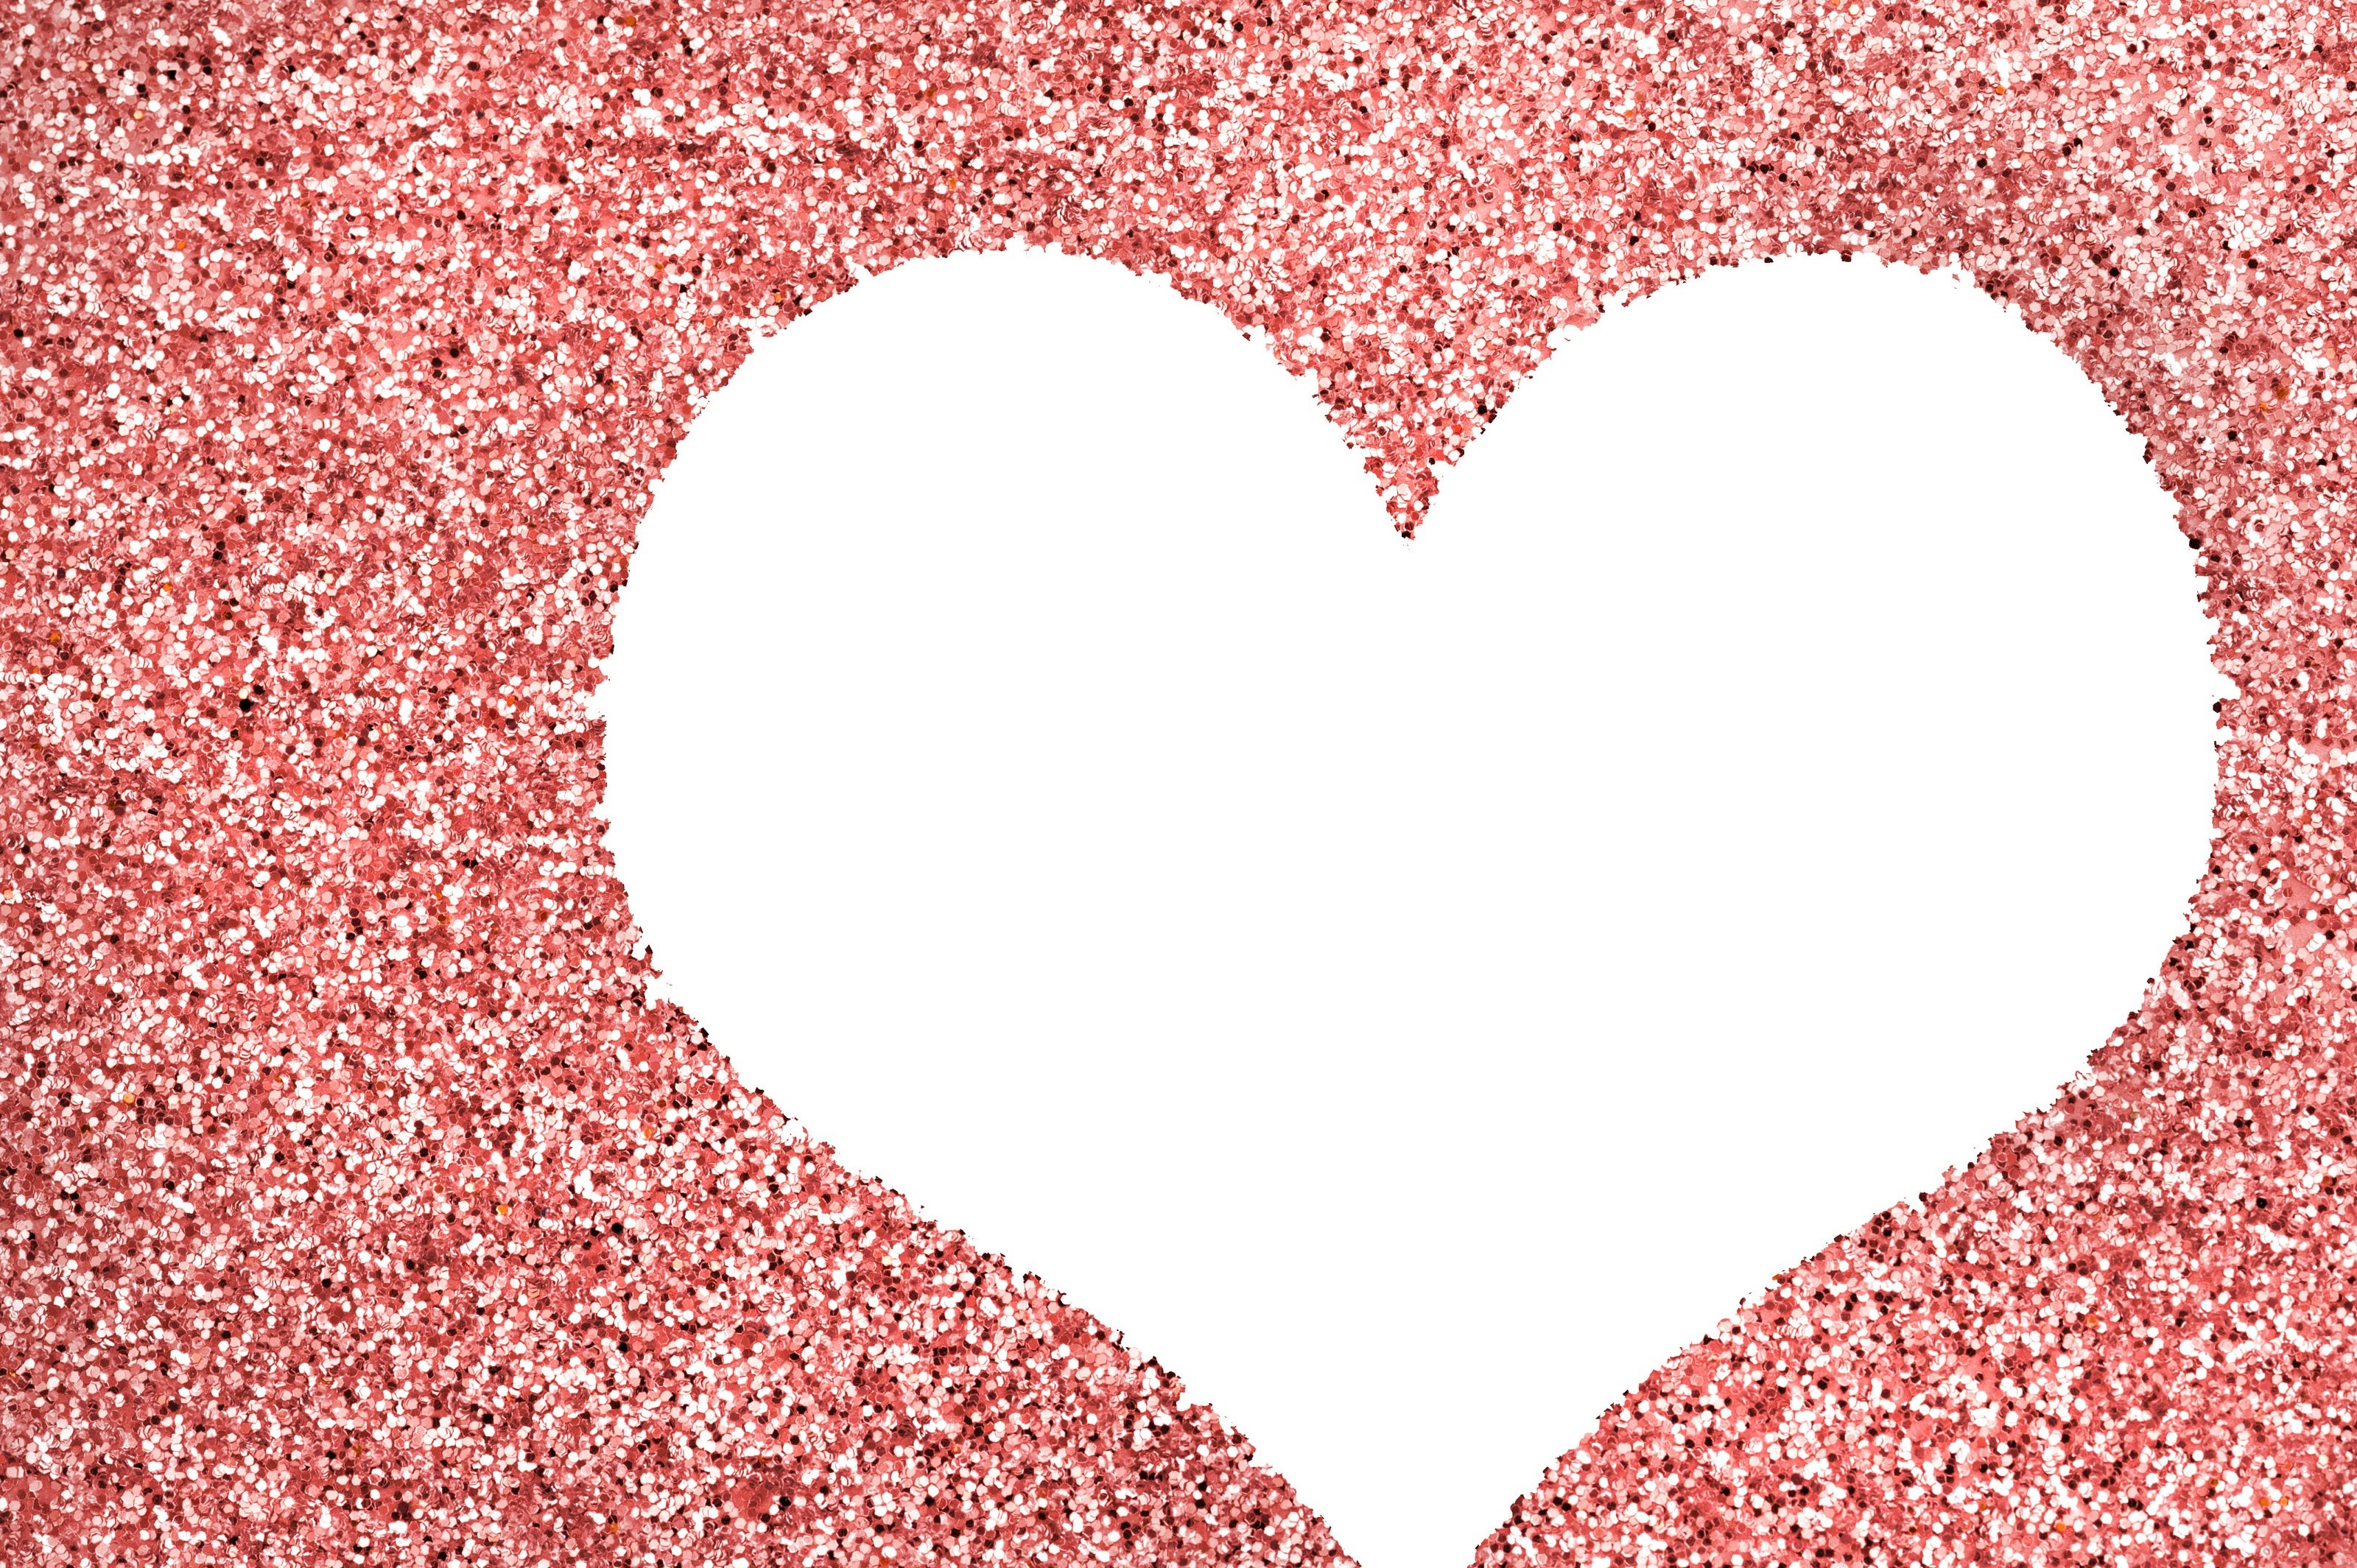 Blank white heart with copyspace for your greeting to a sweetheart or loved one in a textured red glitter background symbolic of love and romance for Valentines Day